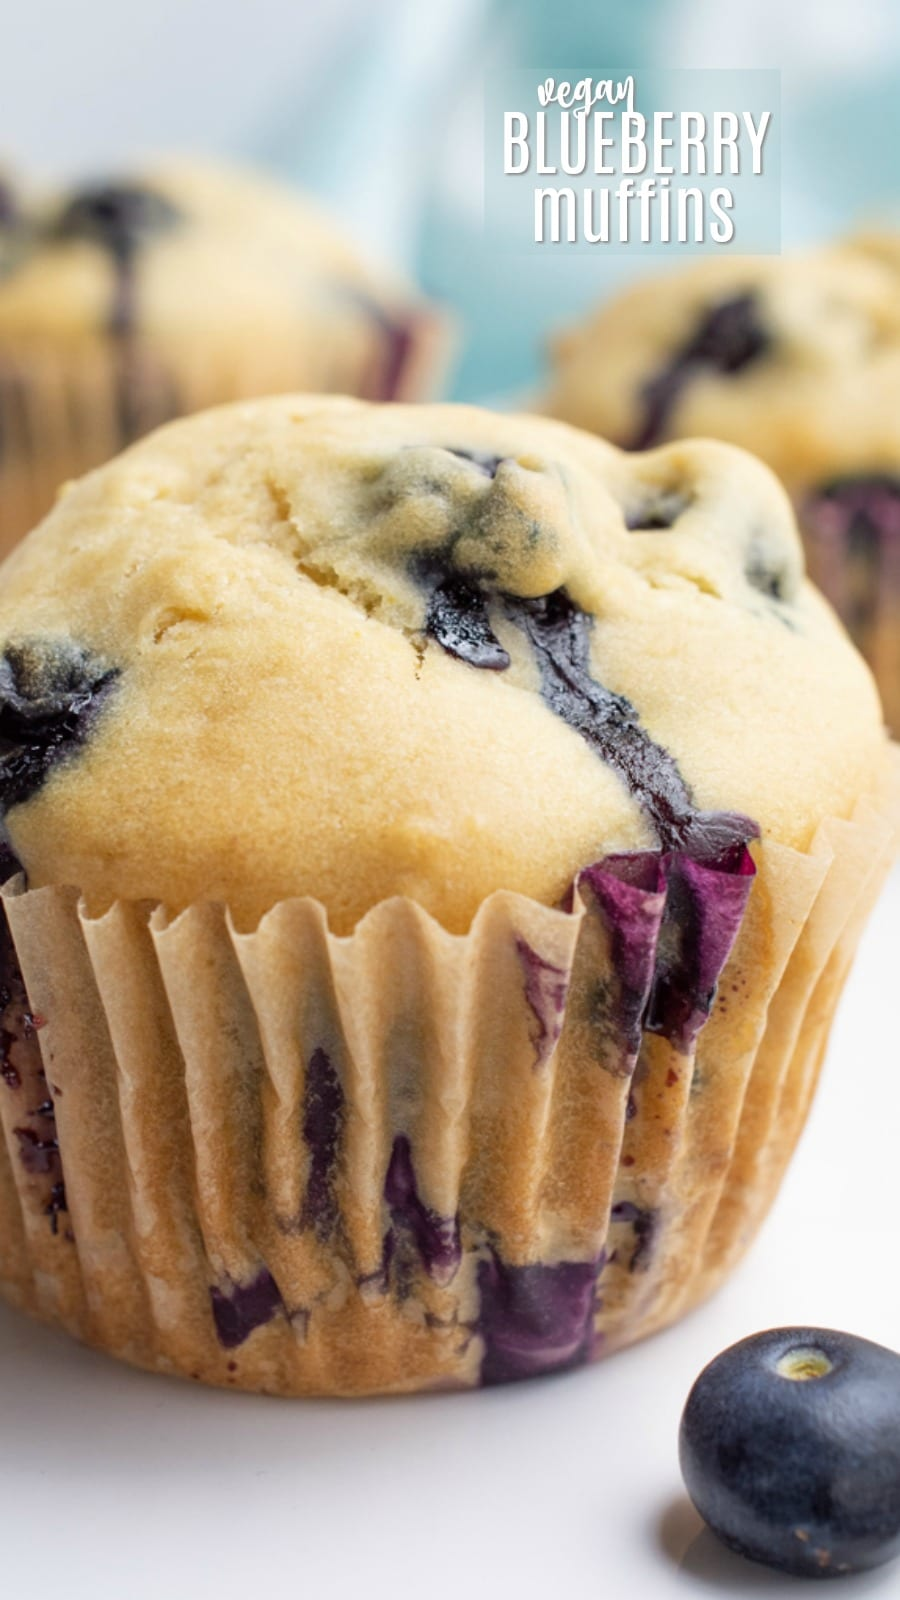 3 Blueberry muffins.